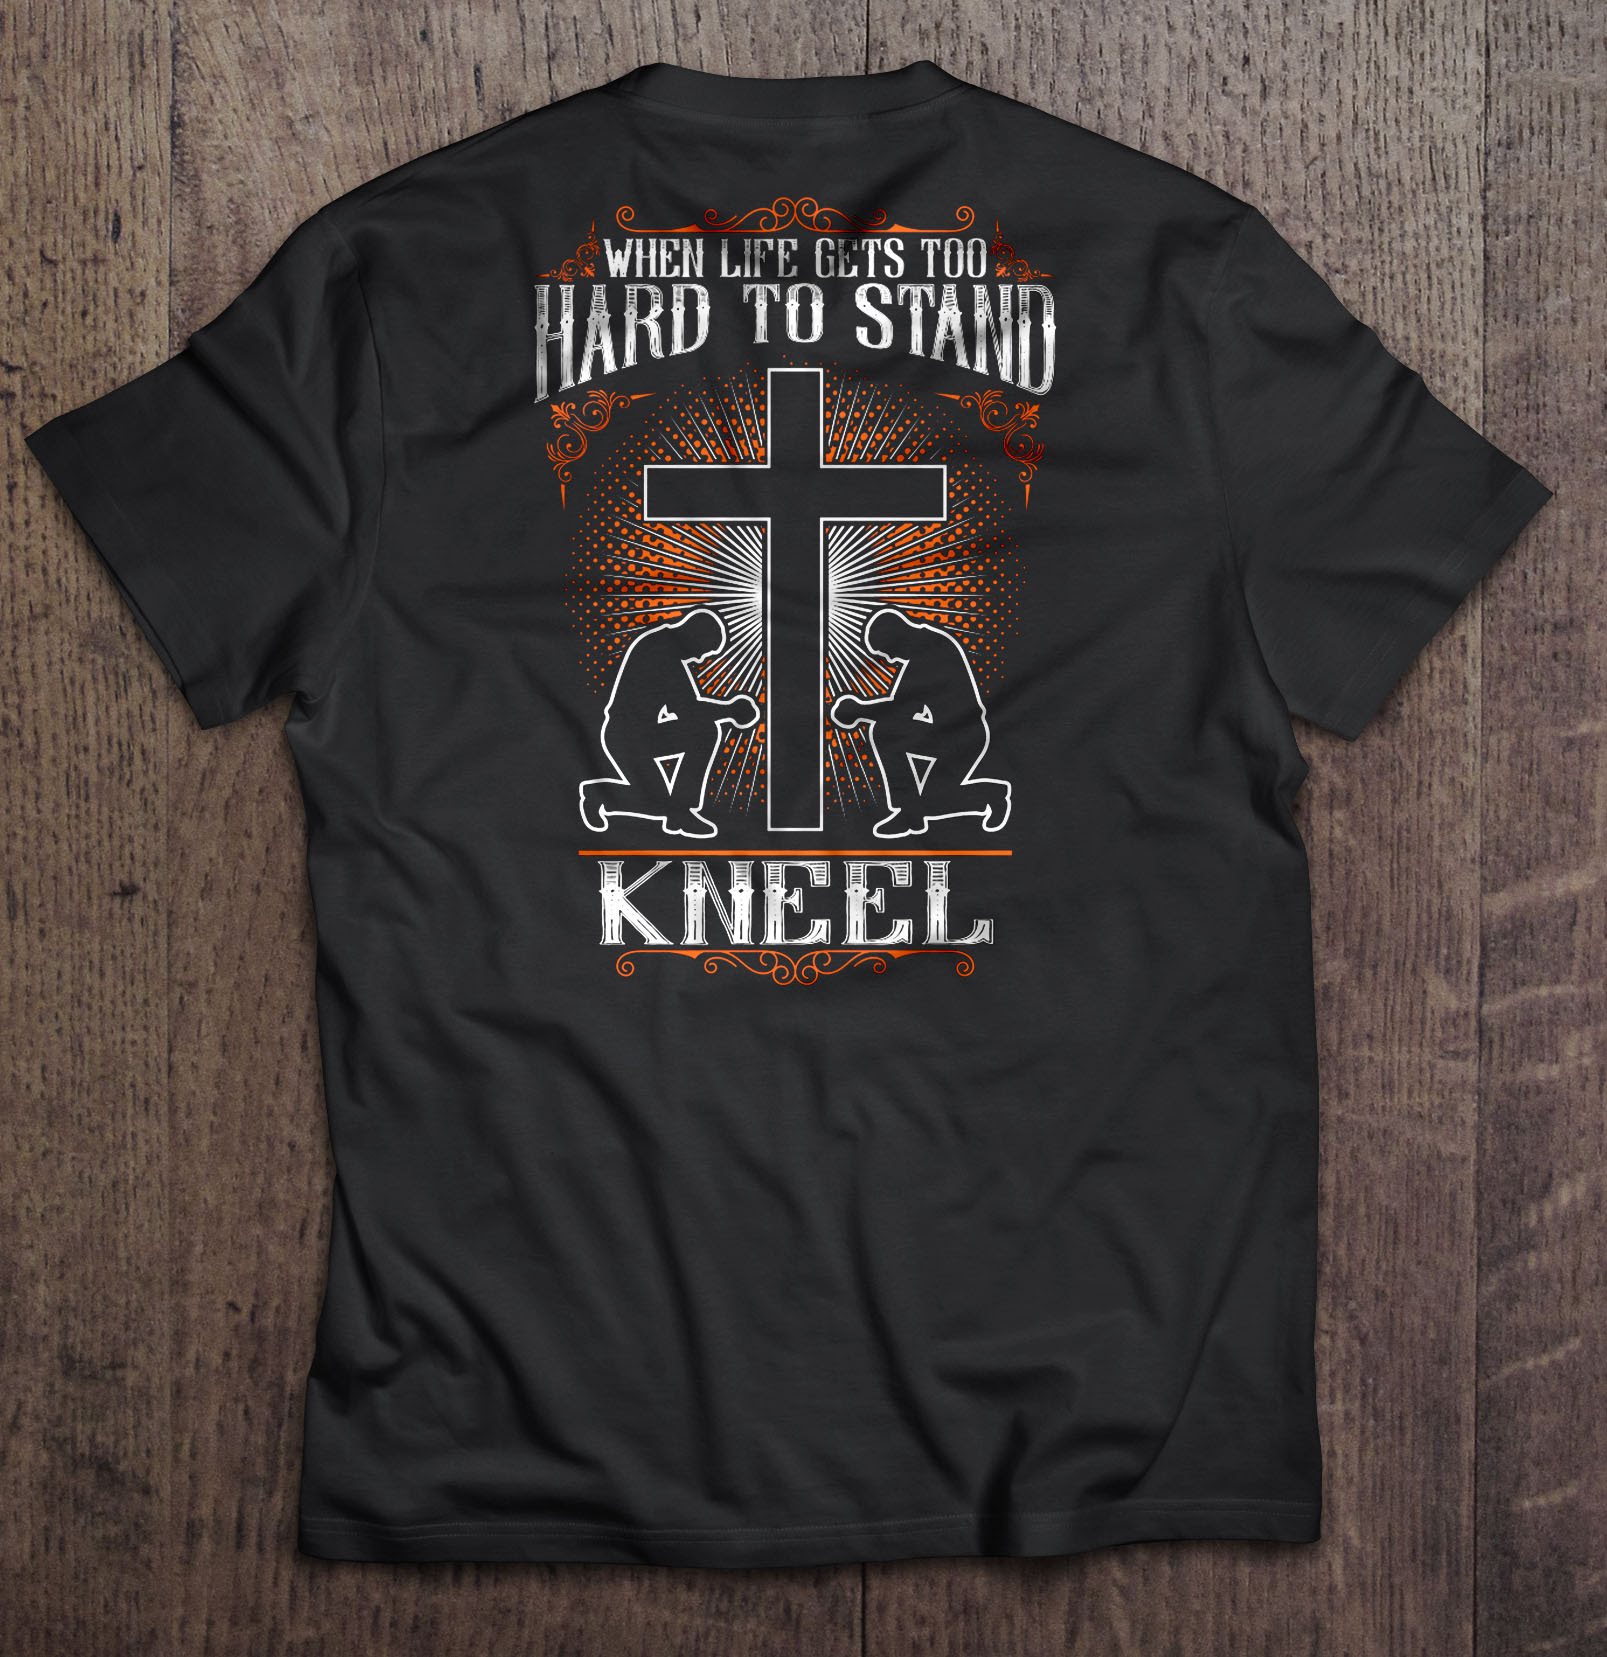 When Life Gets Too Hard To Stand Kneel Version2 T Shirts Teeherivar